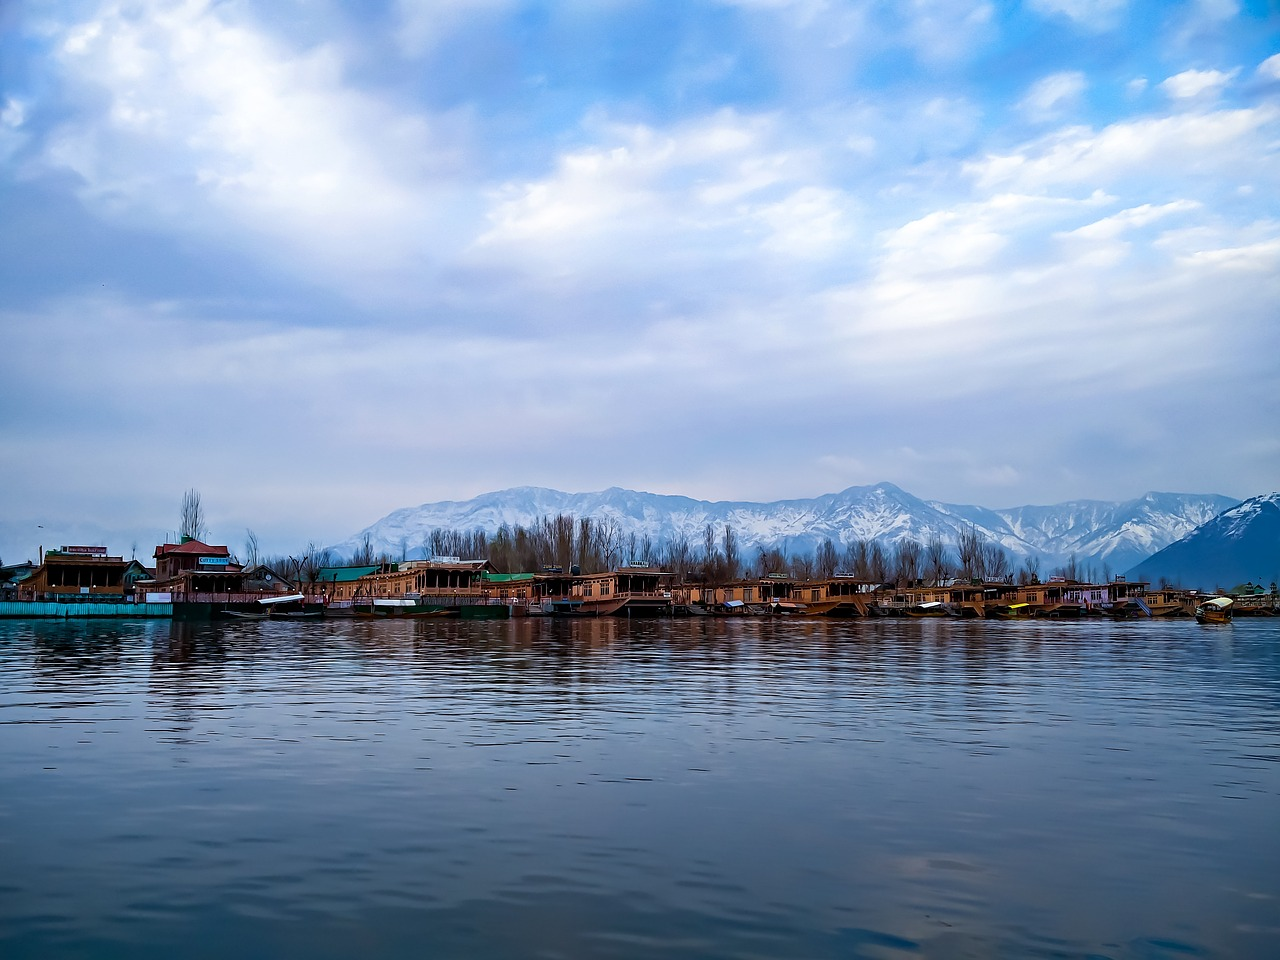 Srinagar - Top 10 best hill stations in north india